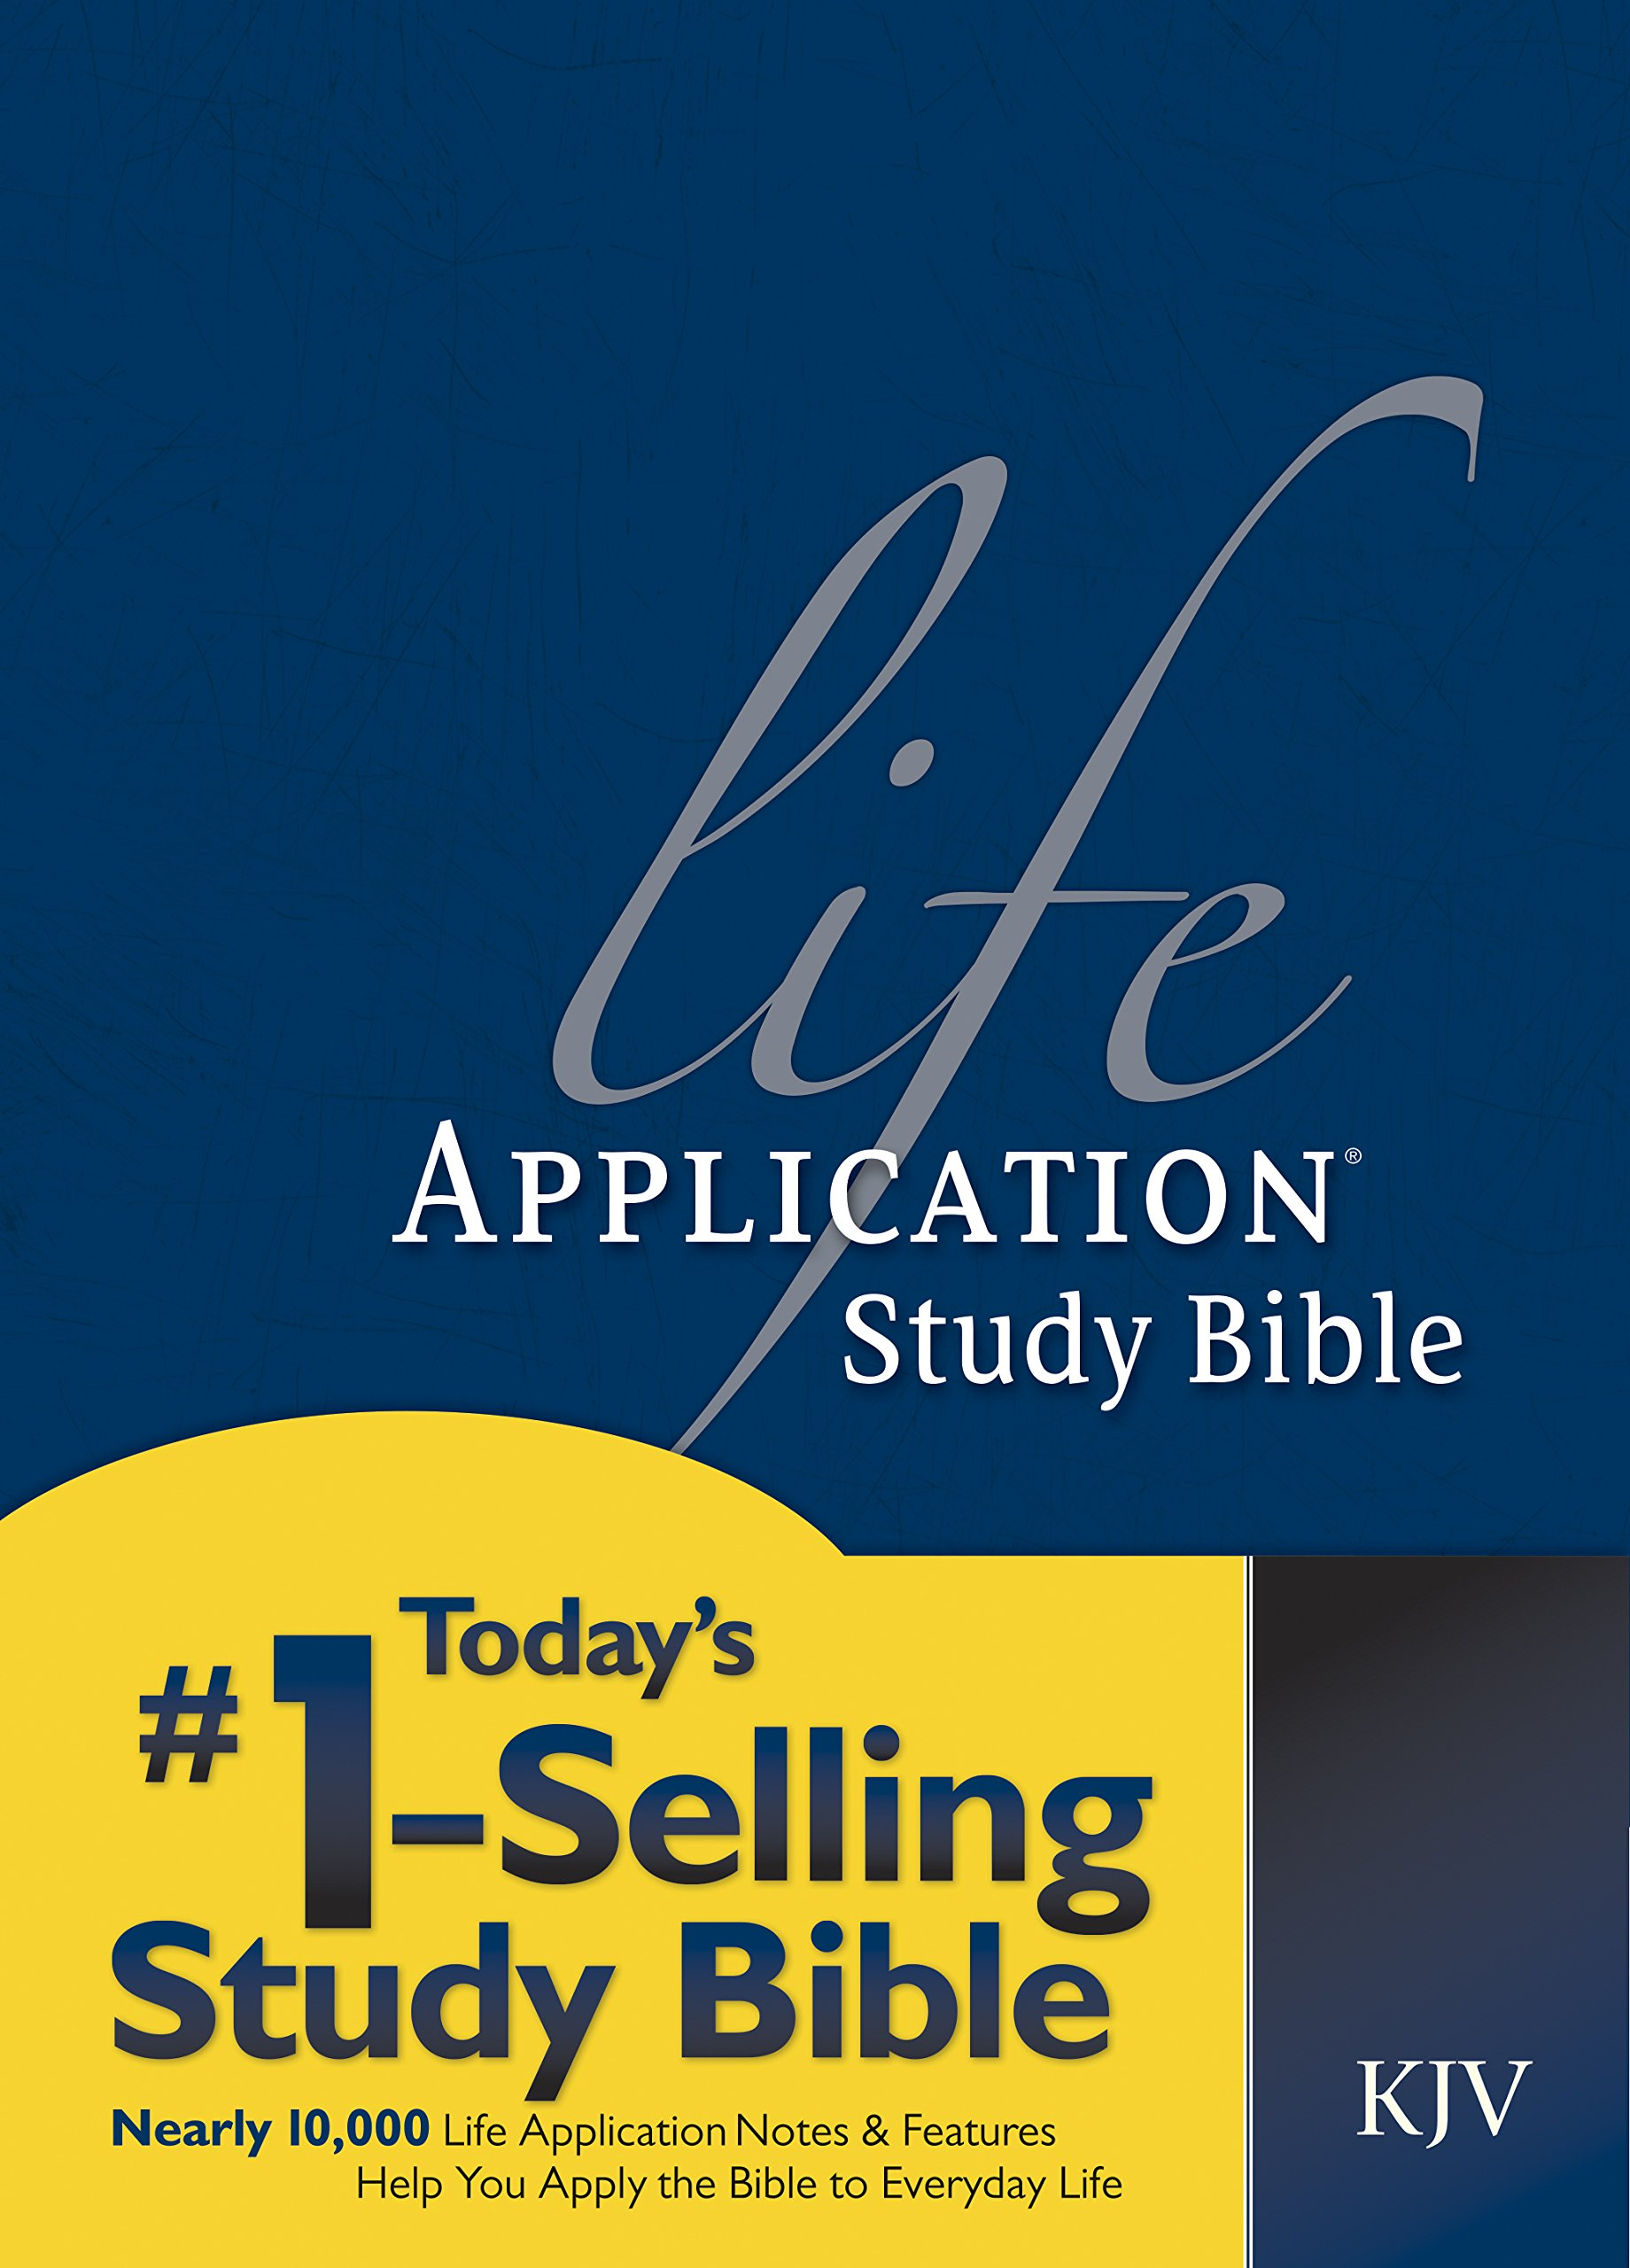 dae24c08c2e53 Life Application Study Bible (King James Version): Tyndale ...